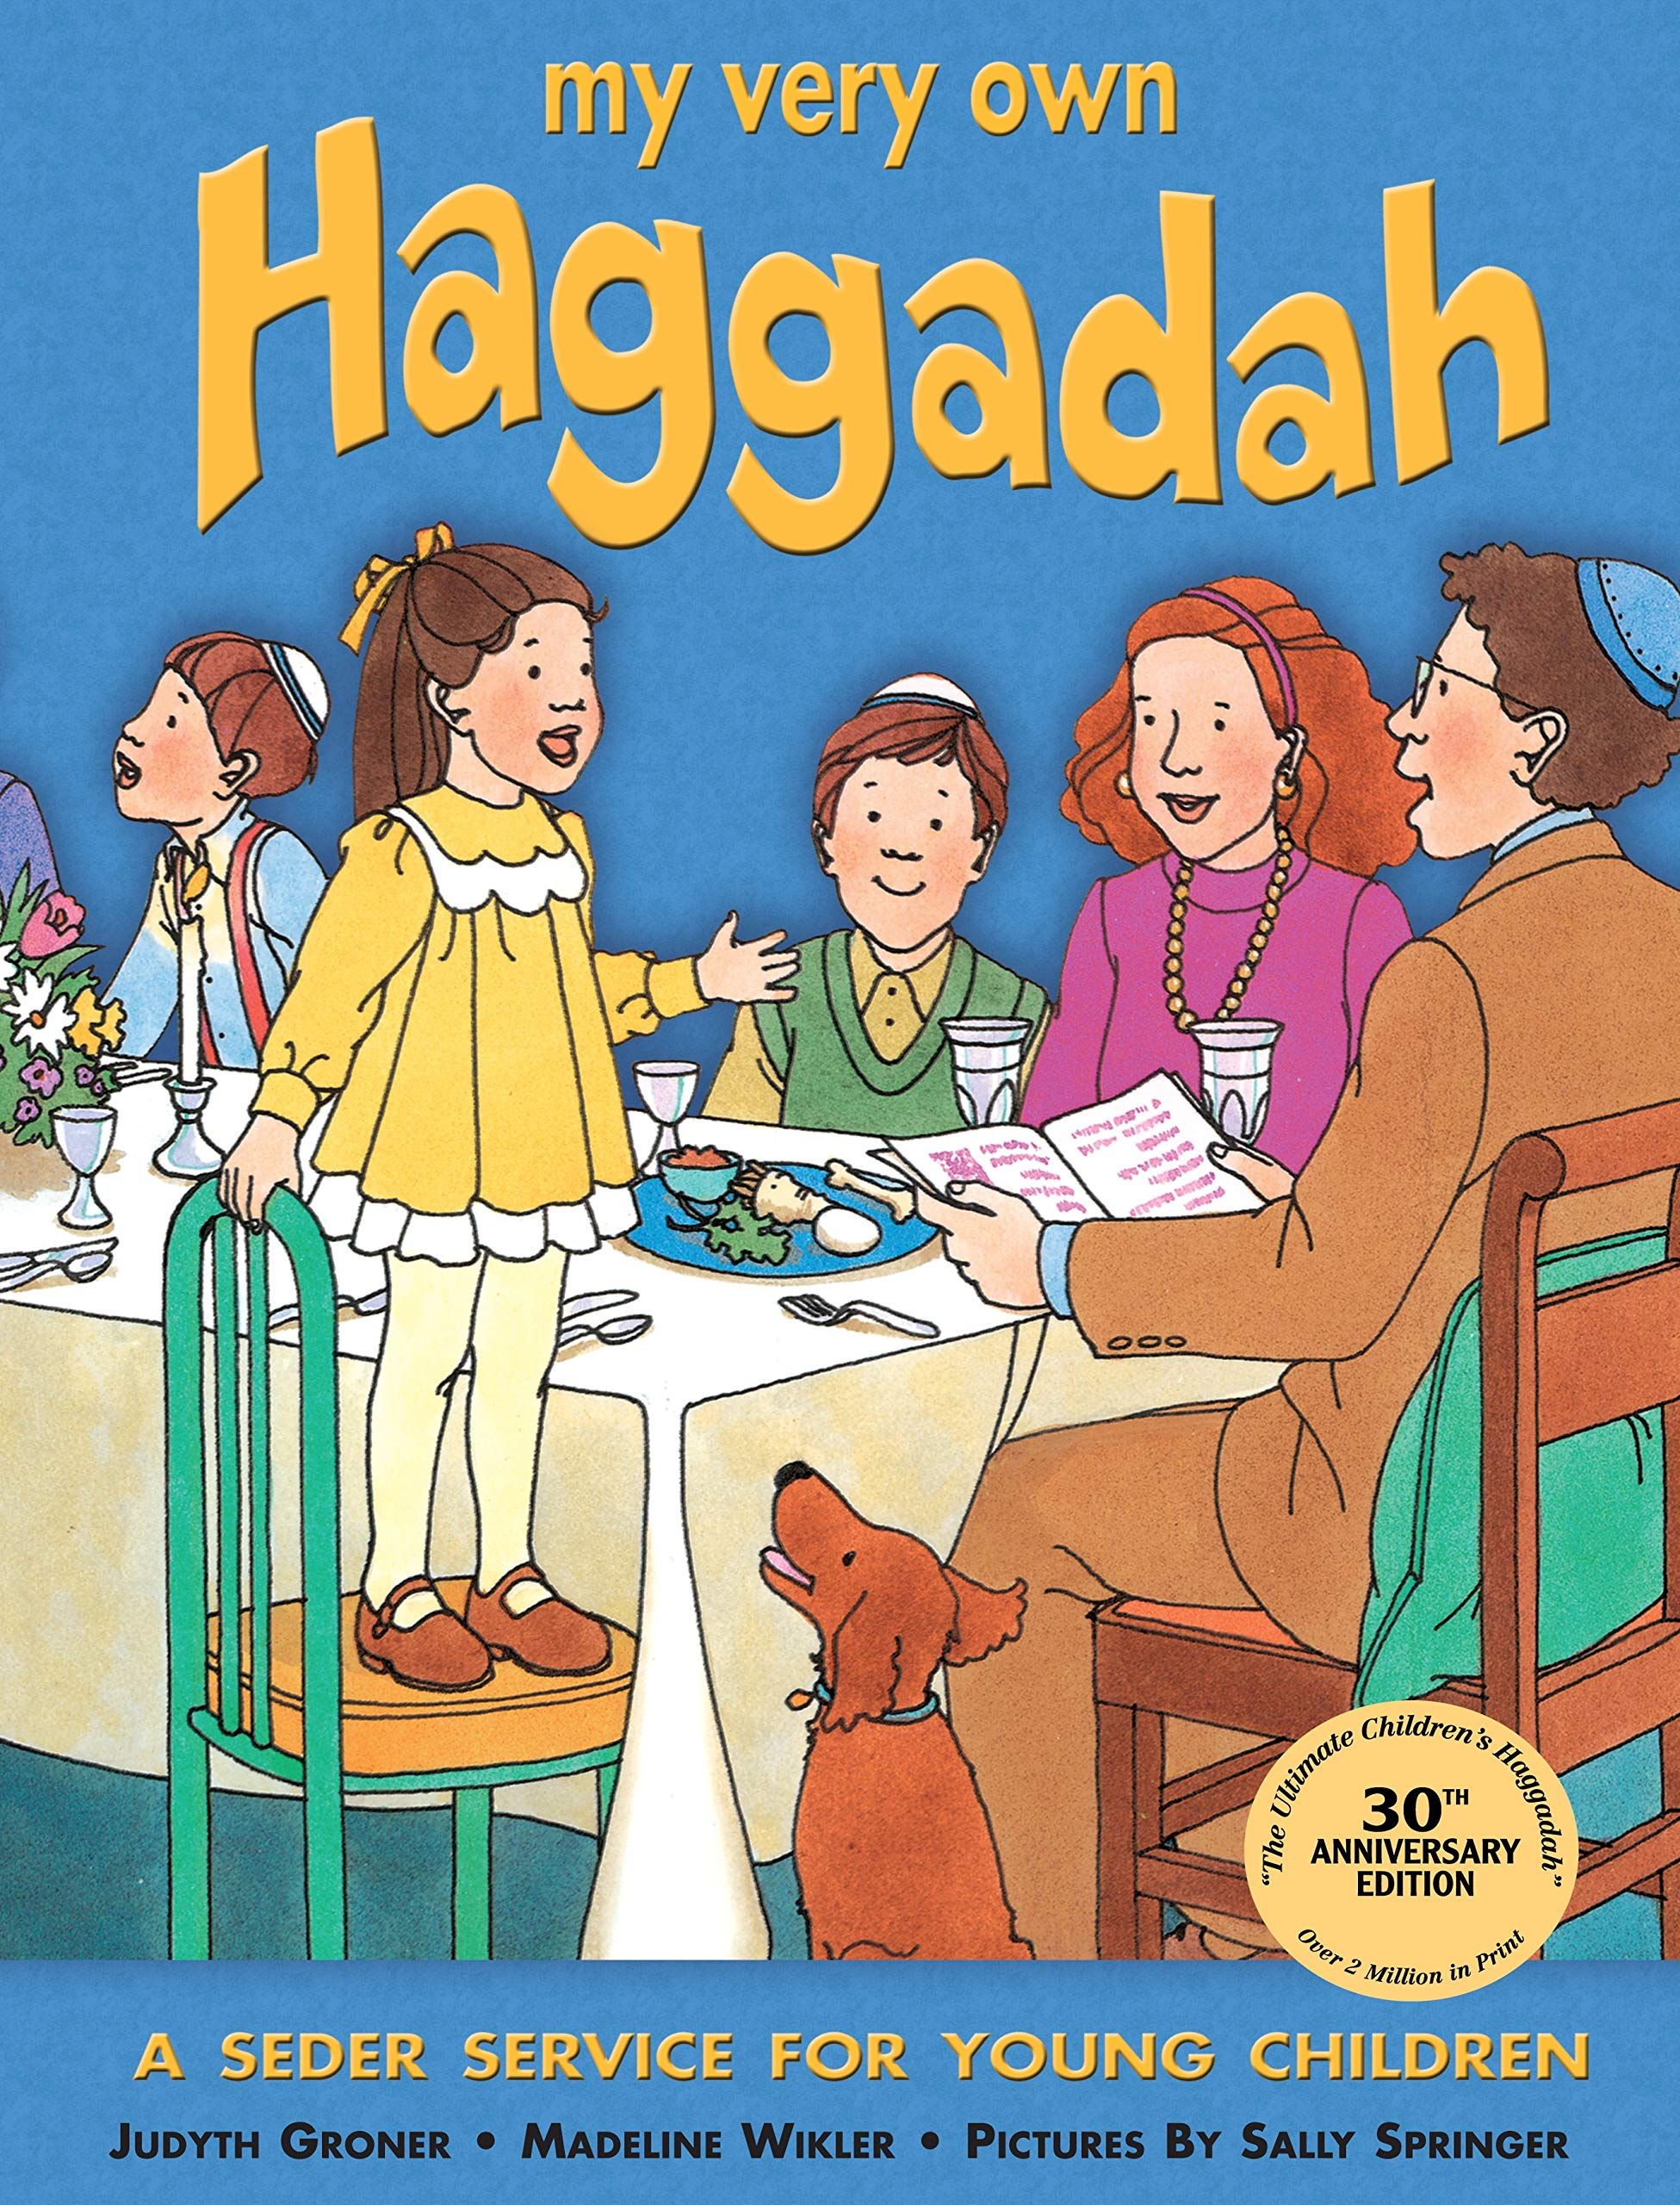 graphic about Children's Passover Seder Printable known as My Extremely Particular Haggadah: A Seder Provider for Youthful Little ones